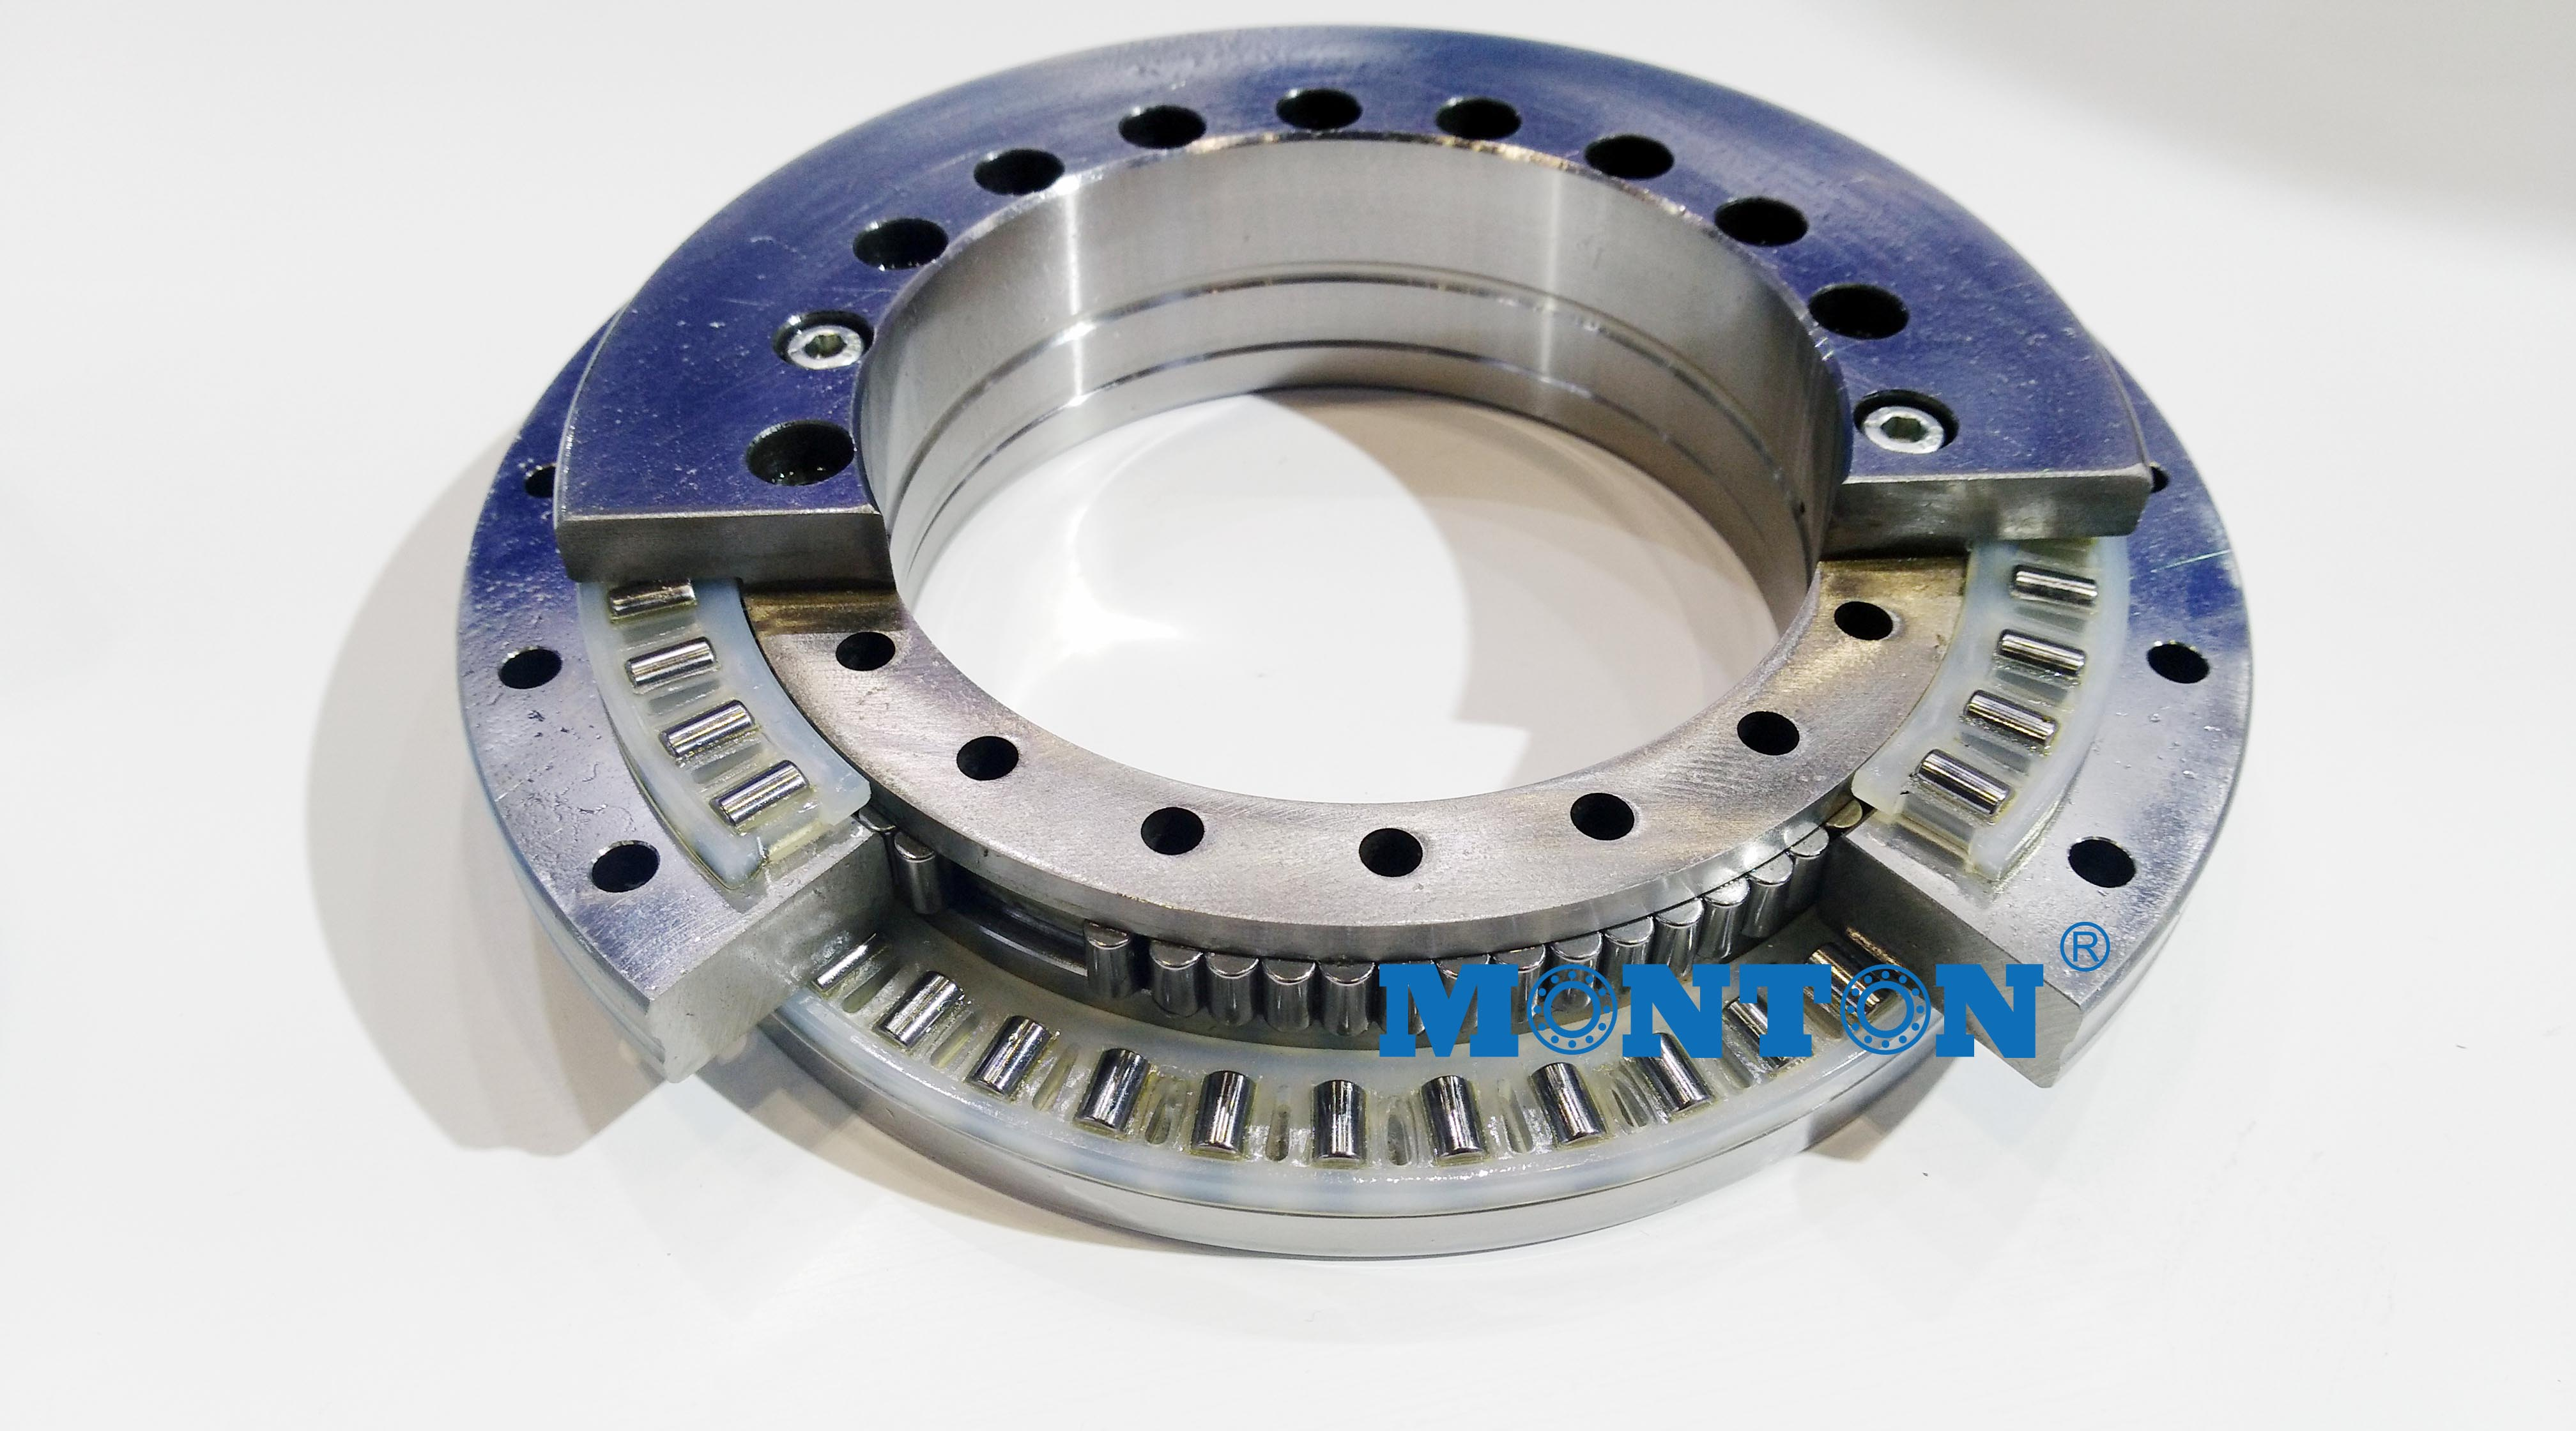 YRTM325P4 Rotary table bearing with angle measuring system  manufacturer